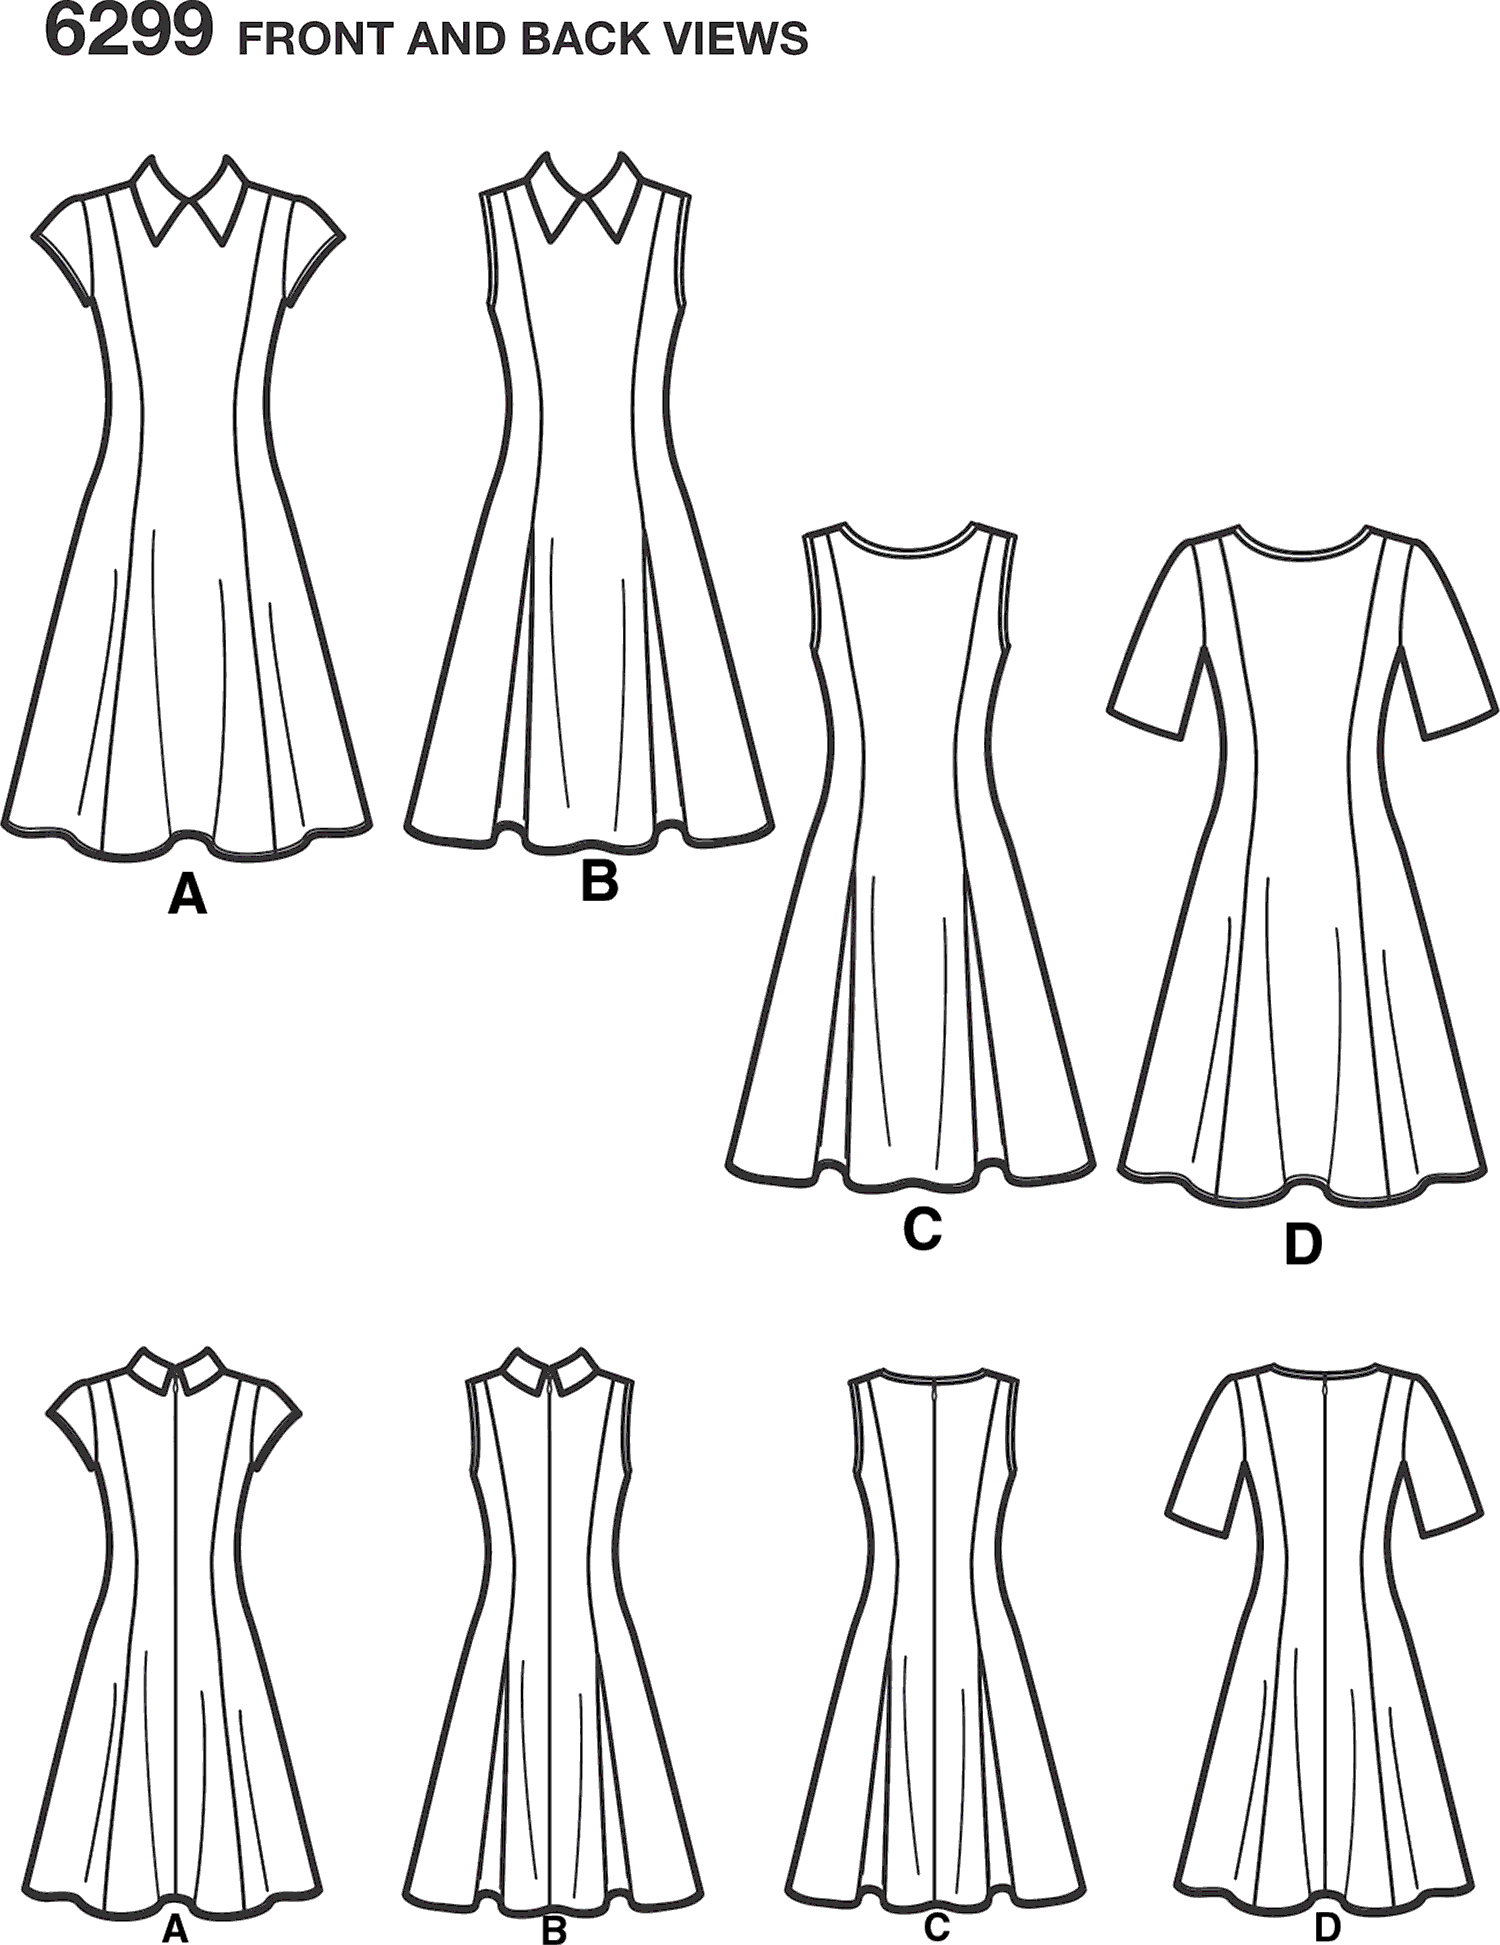 New Look Pattern 6299 Misses Dress with Neckline and Sleeve Variations Line Art From Patternsandplains.com